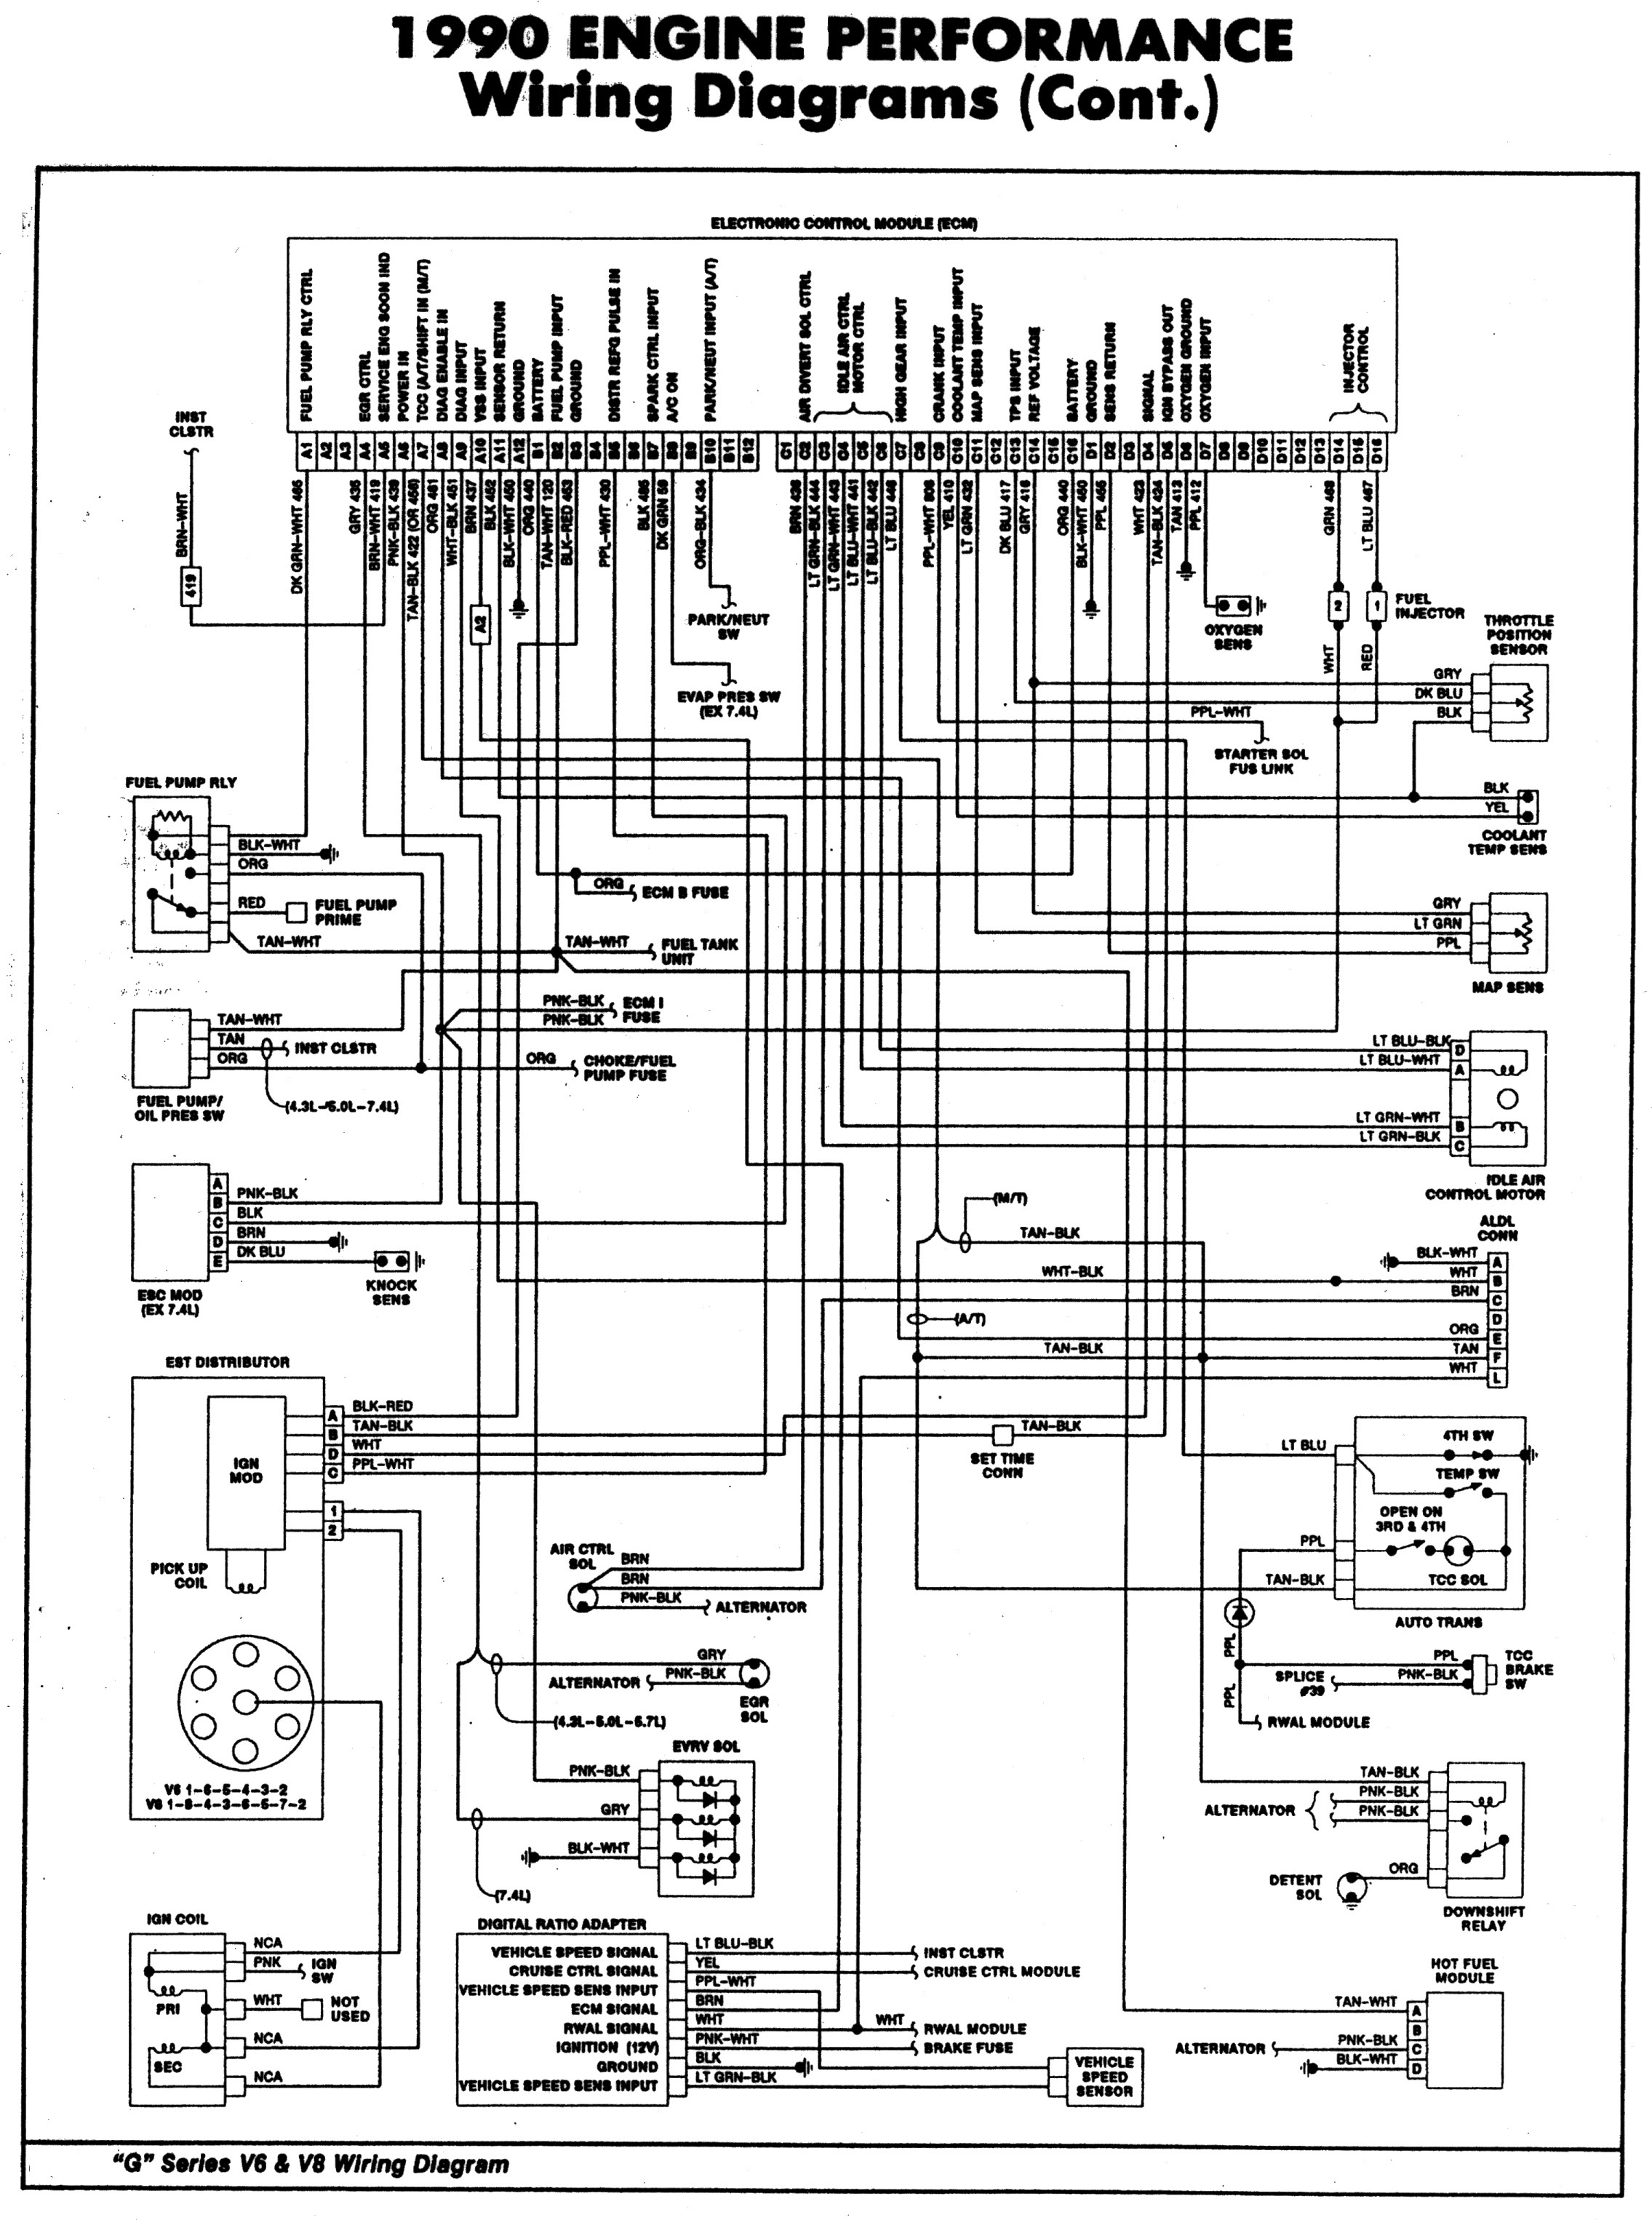 hight resolution of ignitiondiagram 1990 chevy suburban tbi 350 installation land cruiser tech from ih8mud com